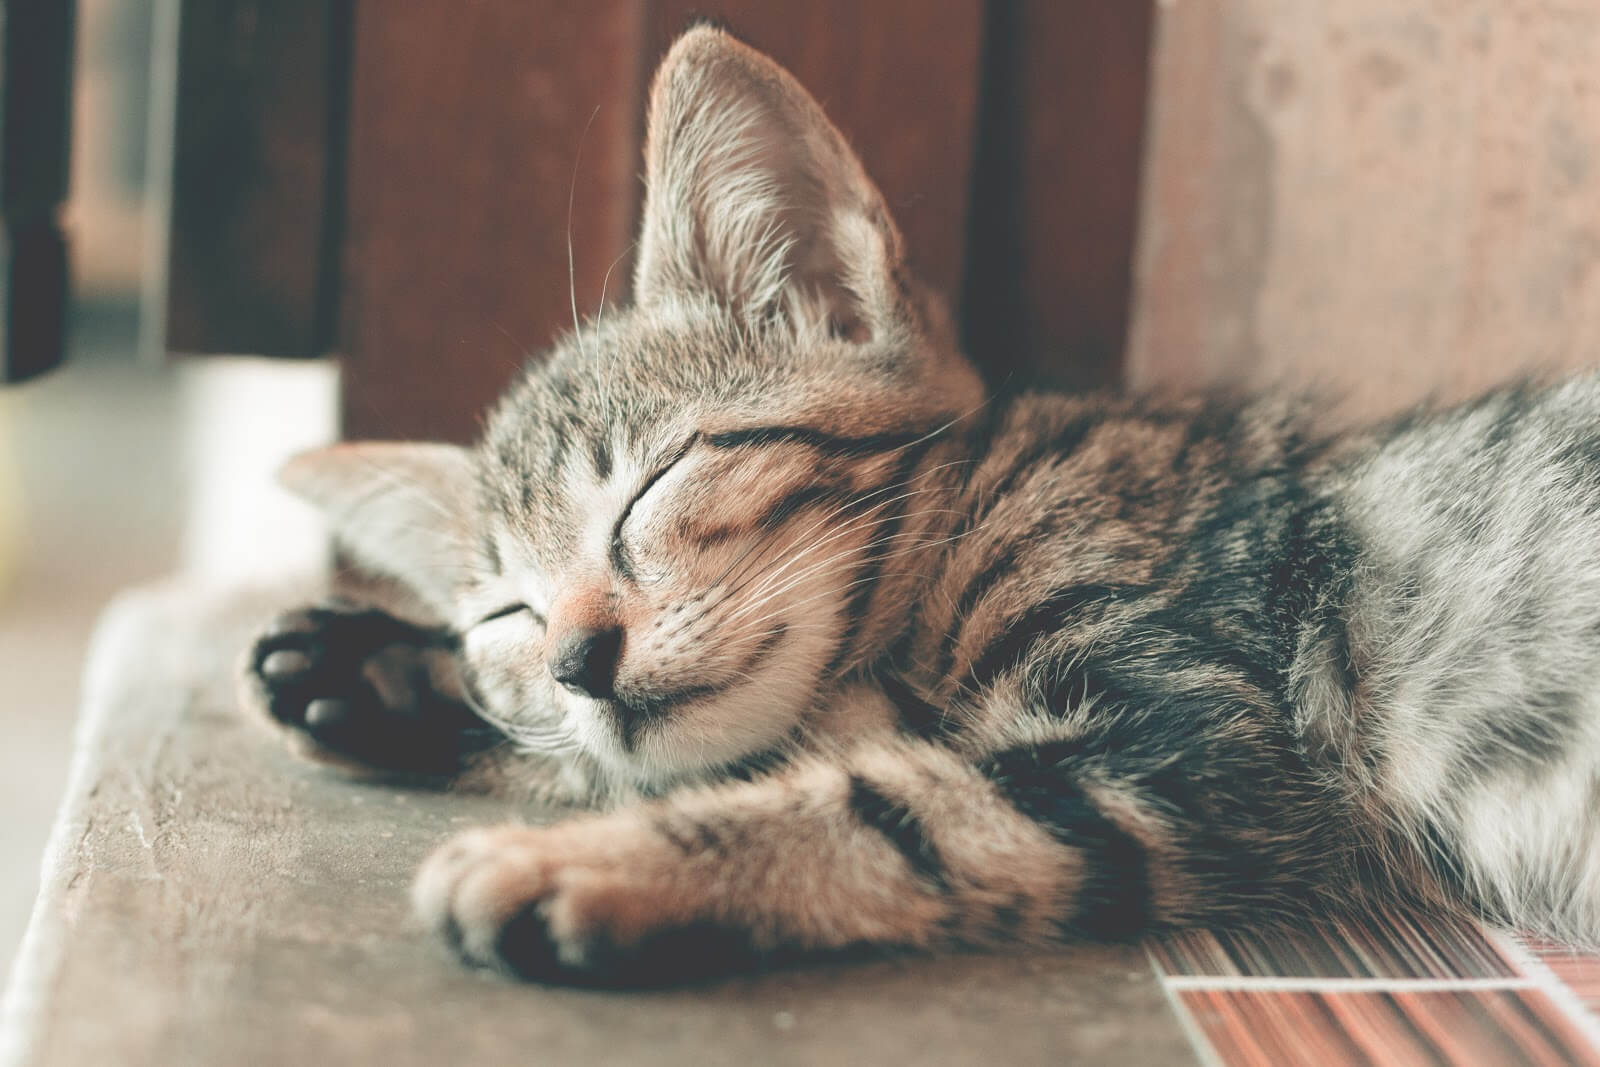 A kitten peacefully sleepng